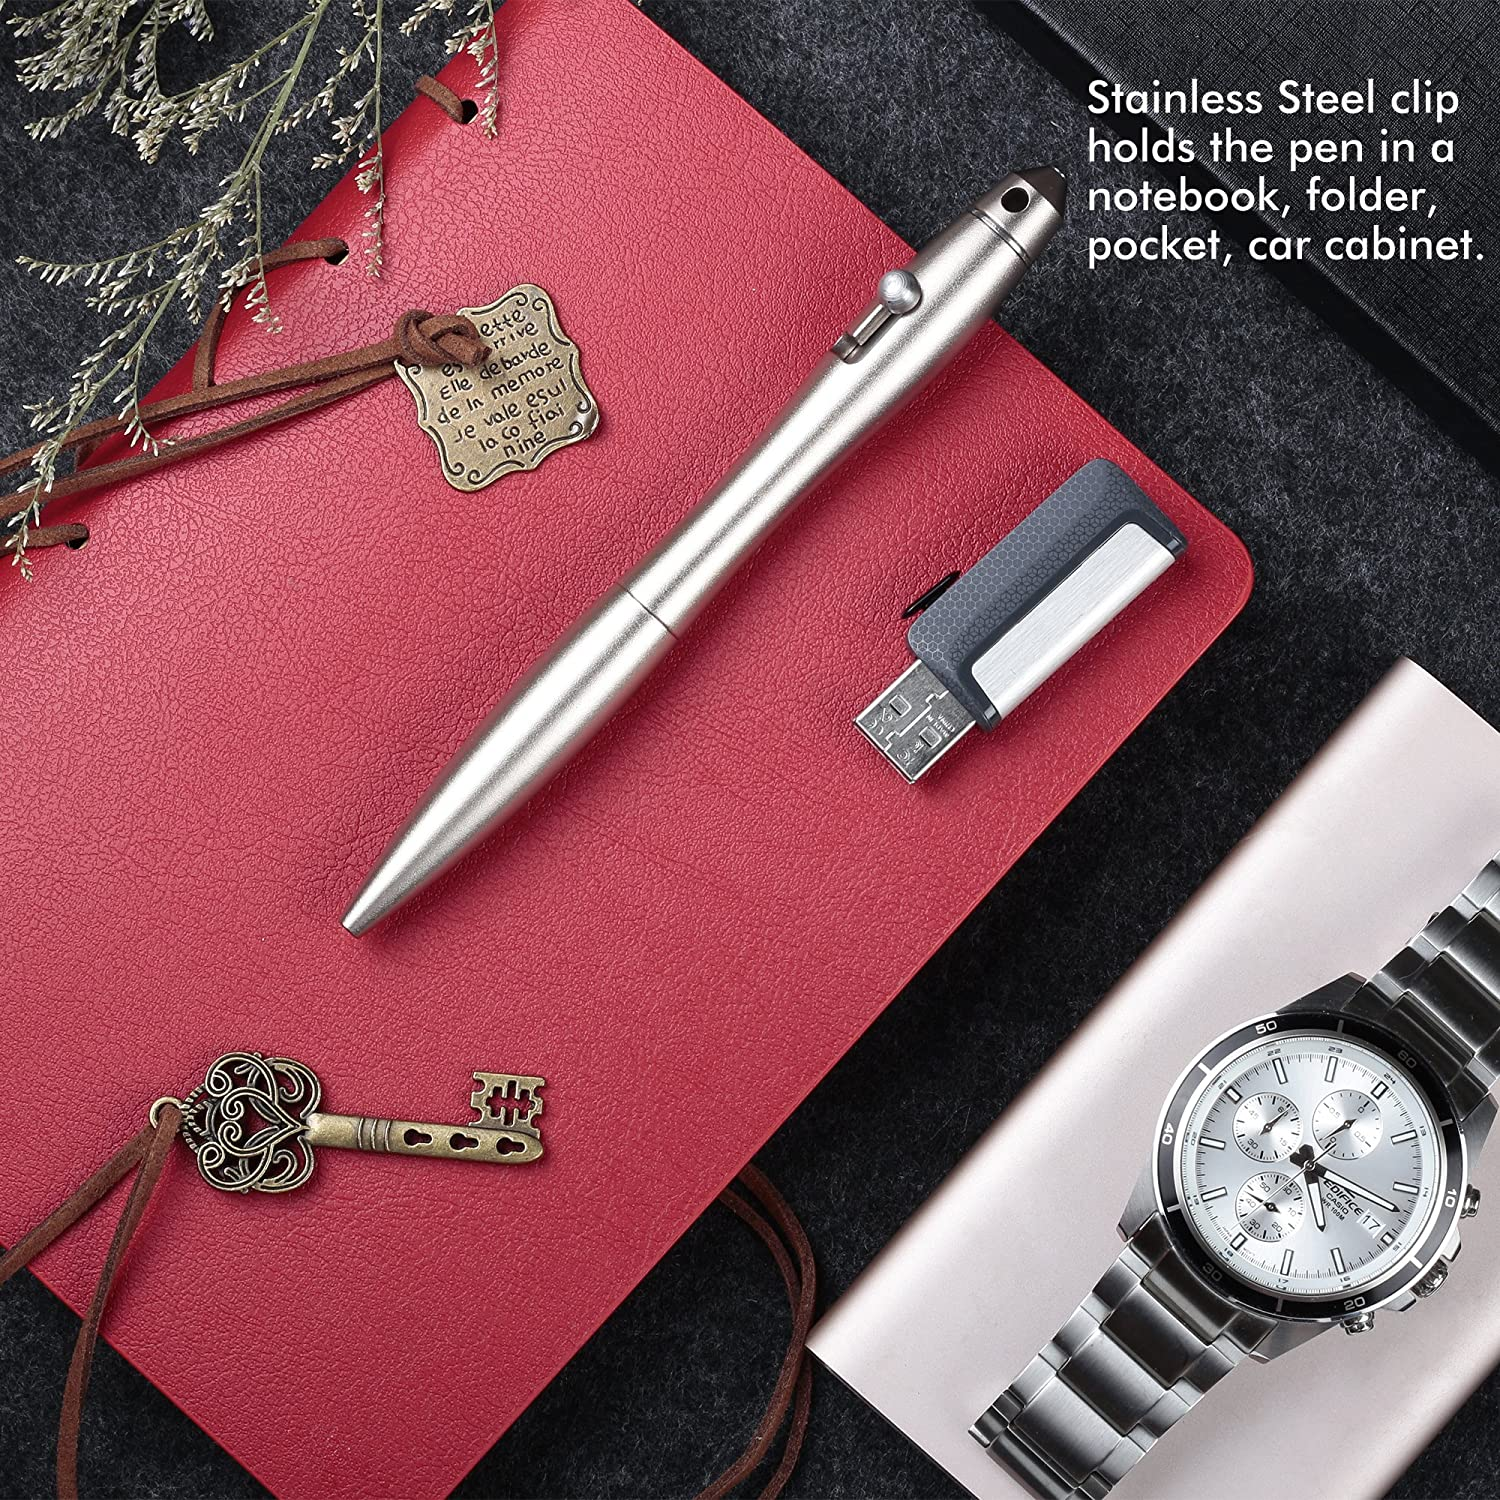 SMOOTHERPRO Practical Bolt Action Pen Multiple Colors Available with Tactical Tip Self Defense Ballpoint Pen with Elegant Shape Color Black